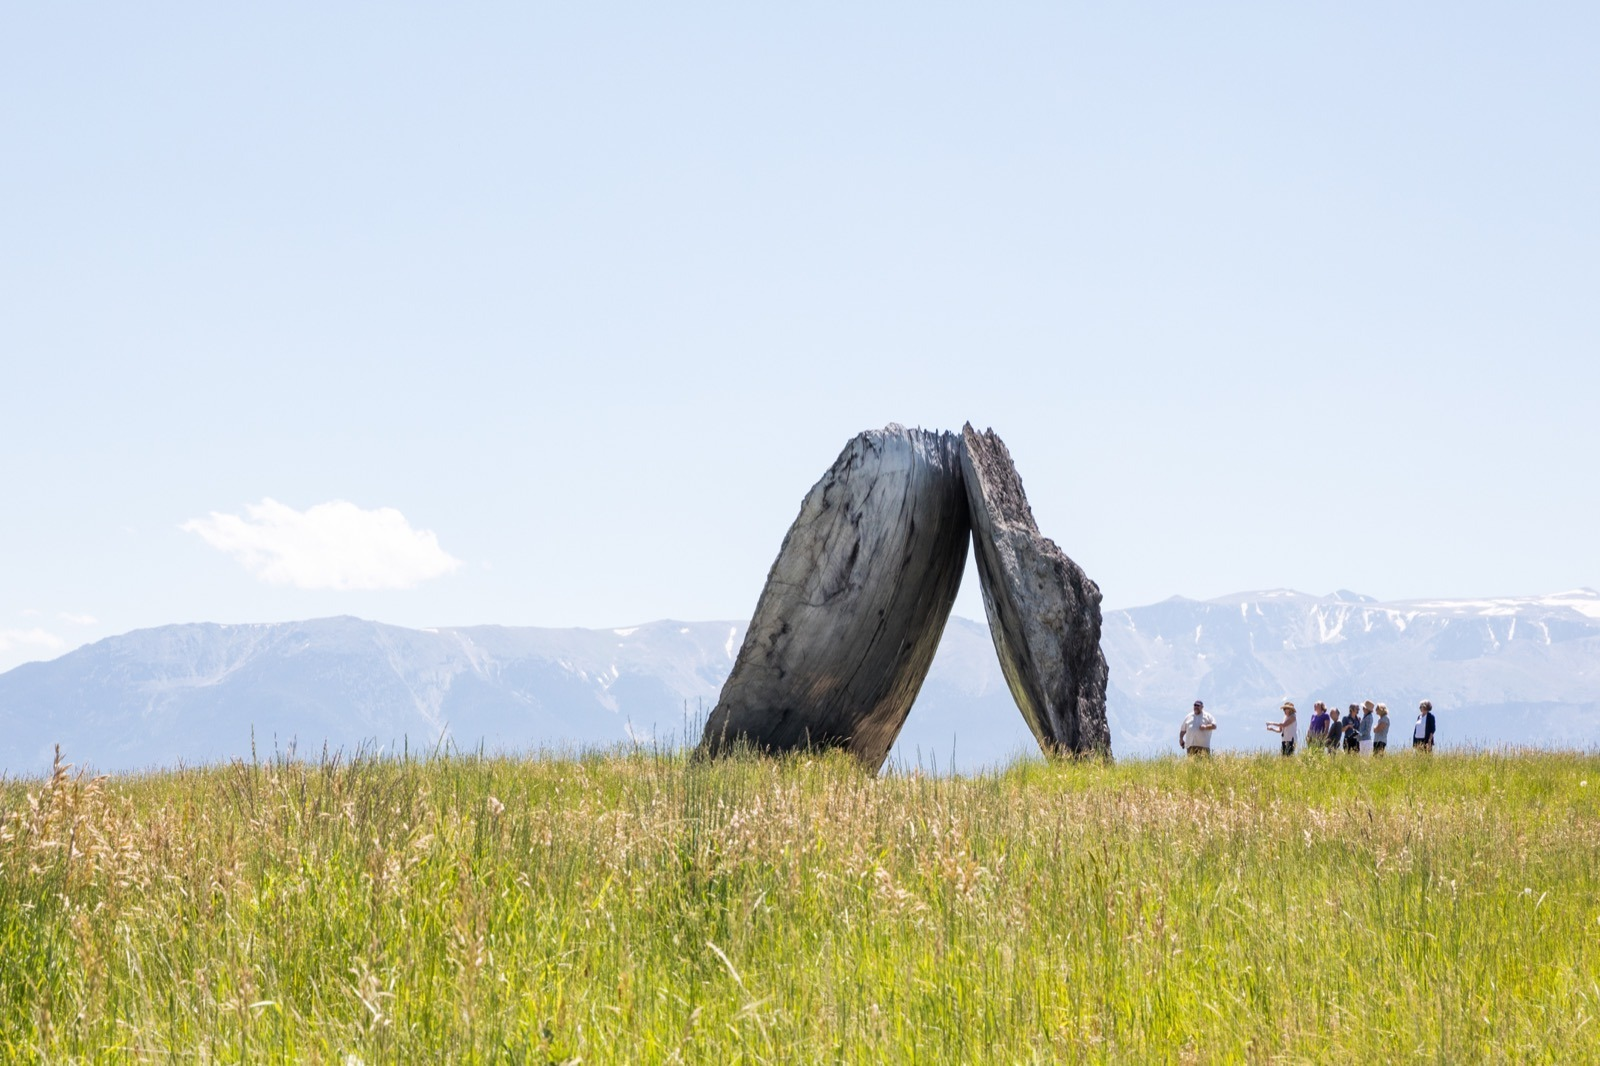 Structure at Tippet Rise Art Center